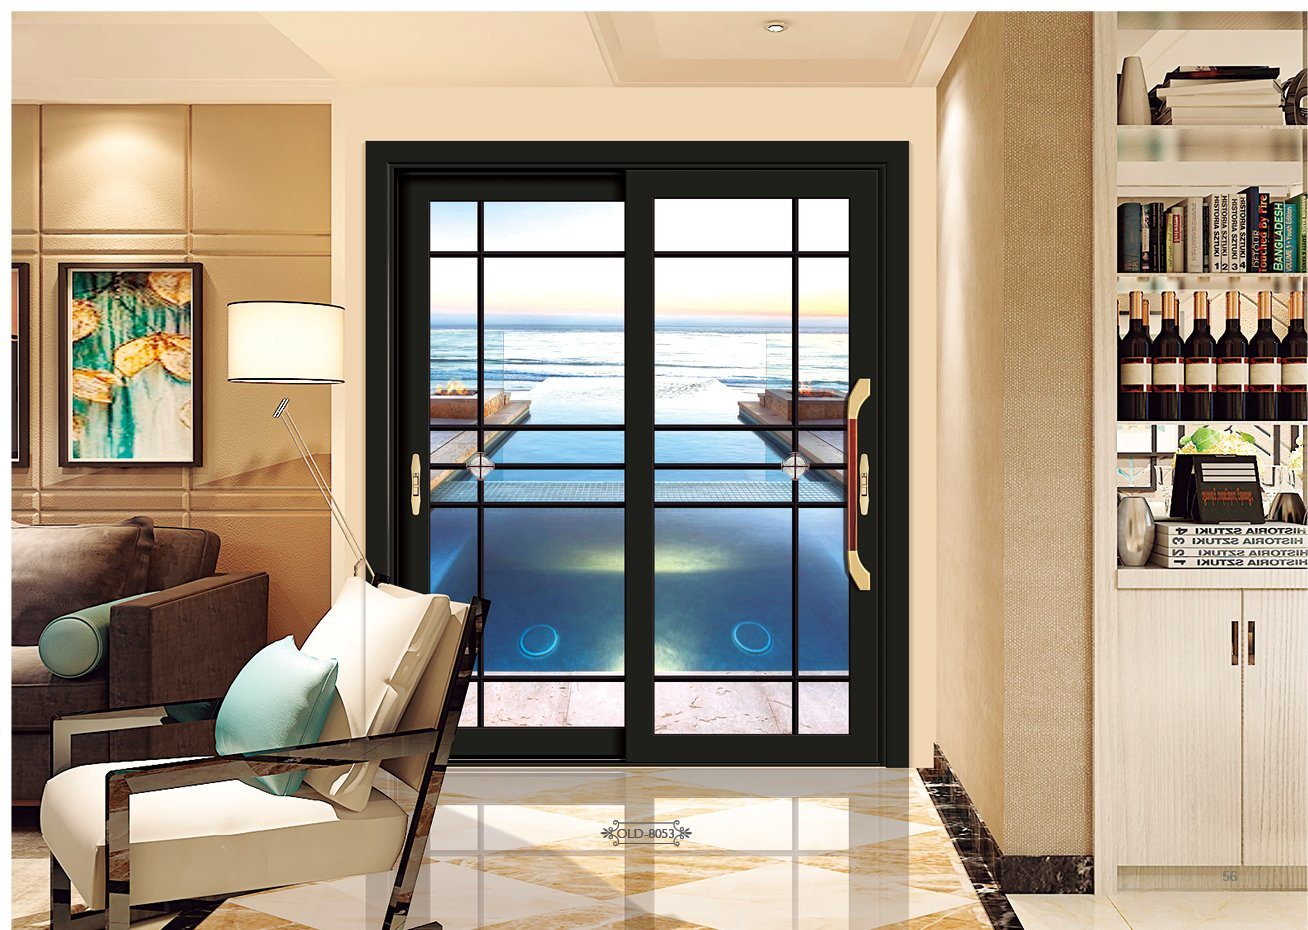 hot item security french exterior aluminium alloy tempered glass sliding window door house interior entrance aluminum steel patio doors with grill